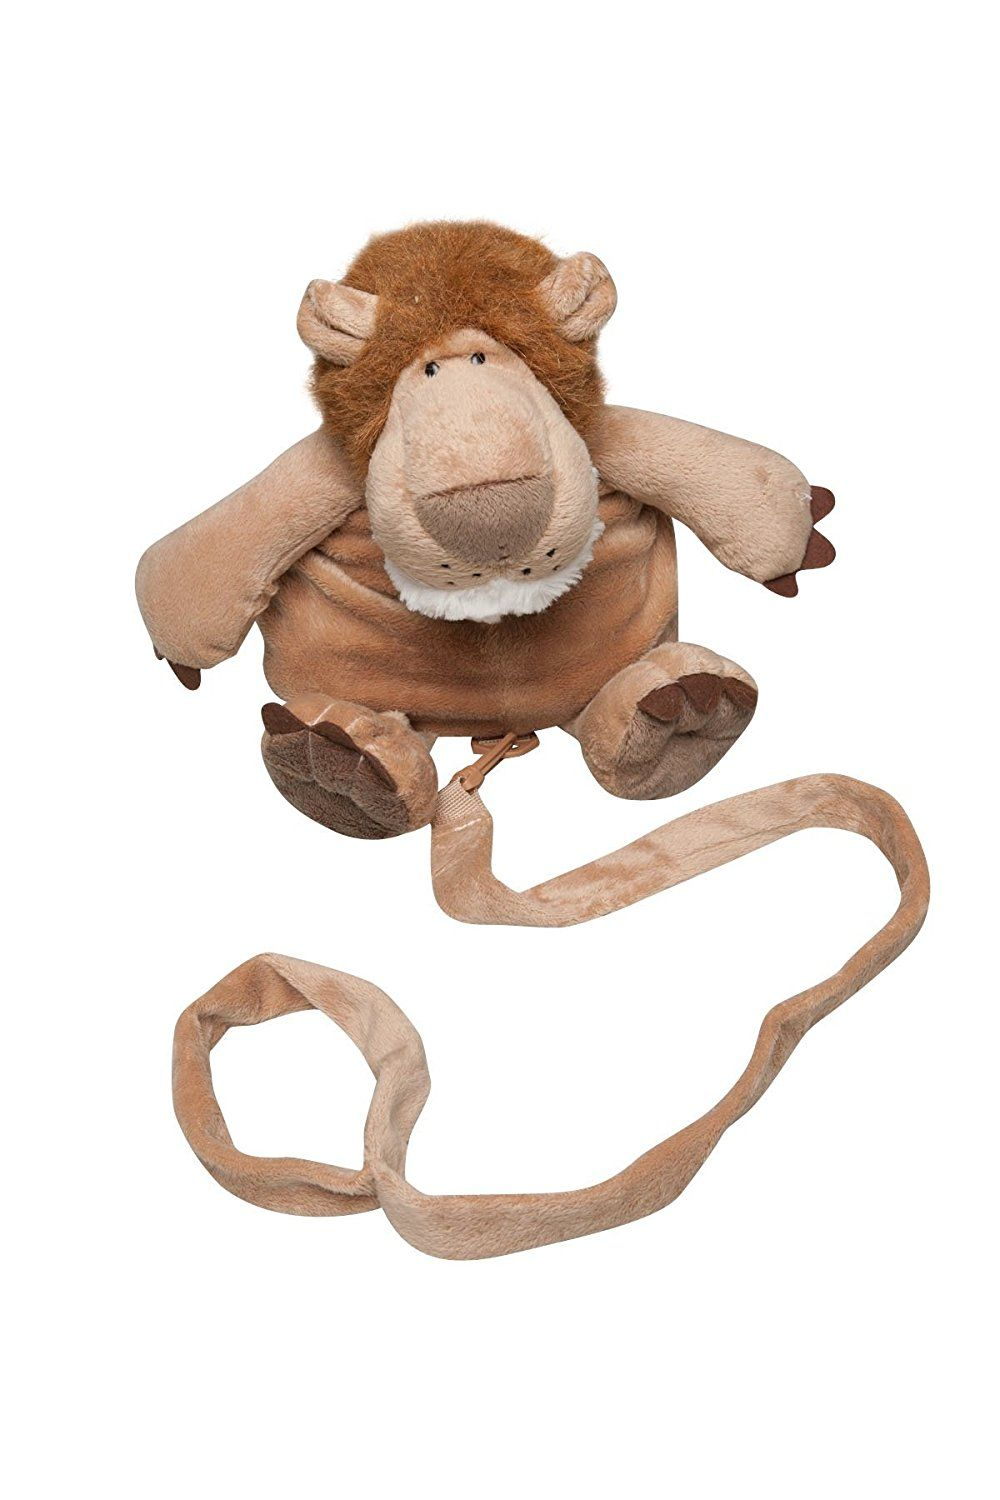 Animal 2 in 1 Harness Backpack, Lion, Brown, Child